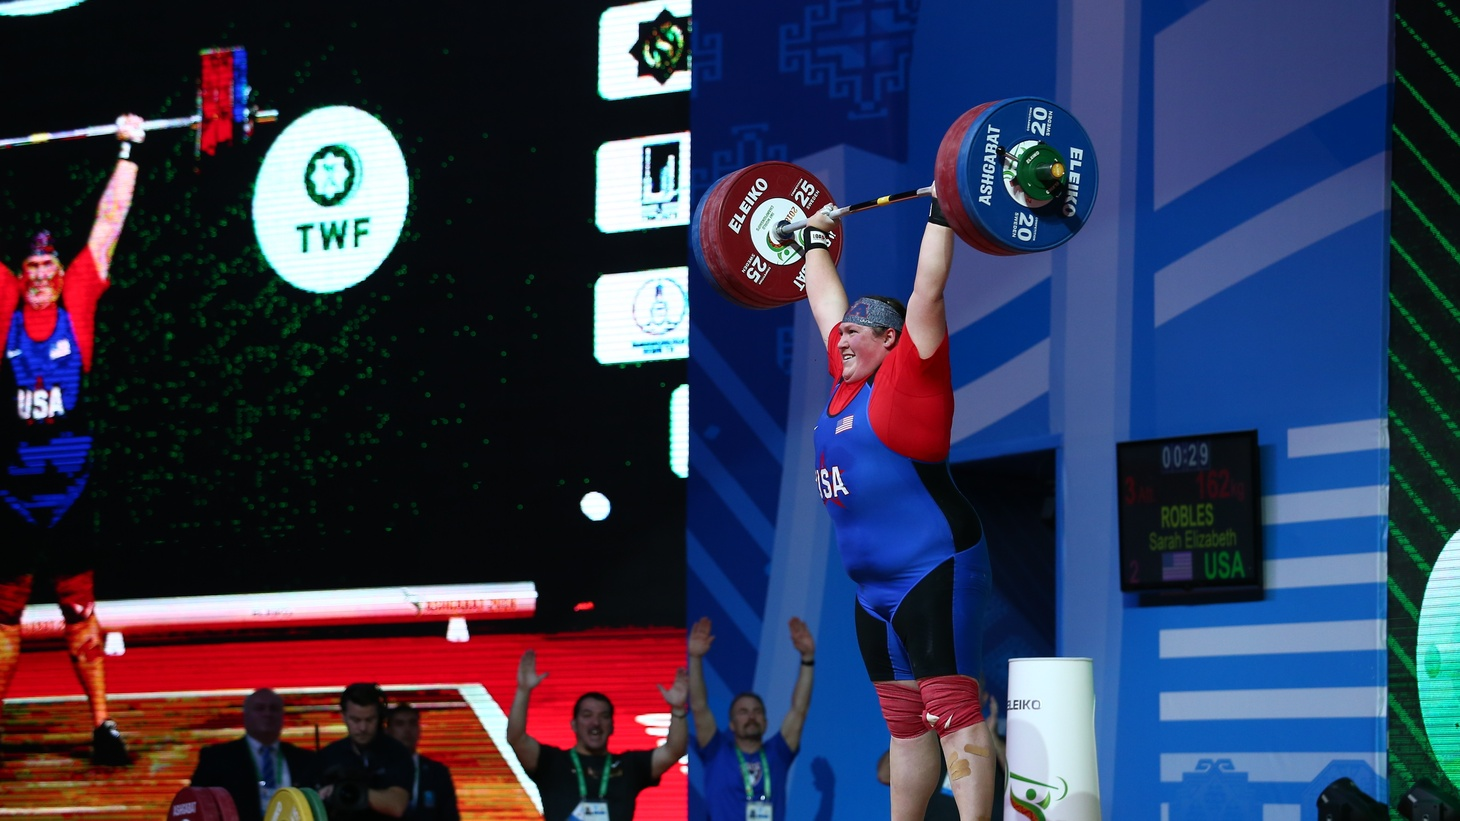 Sarah Robles at the 2018 IWF World Weightlifting Championships in Ashgabat, Turkmenistan.